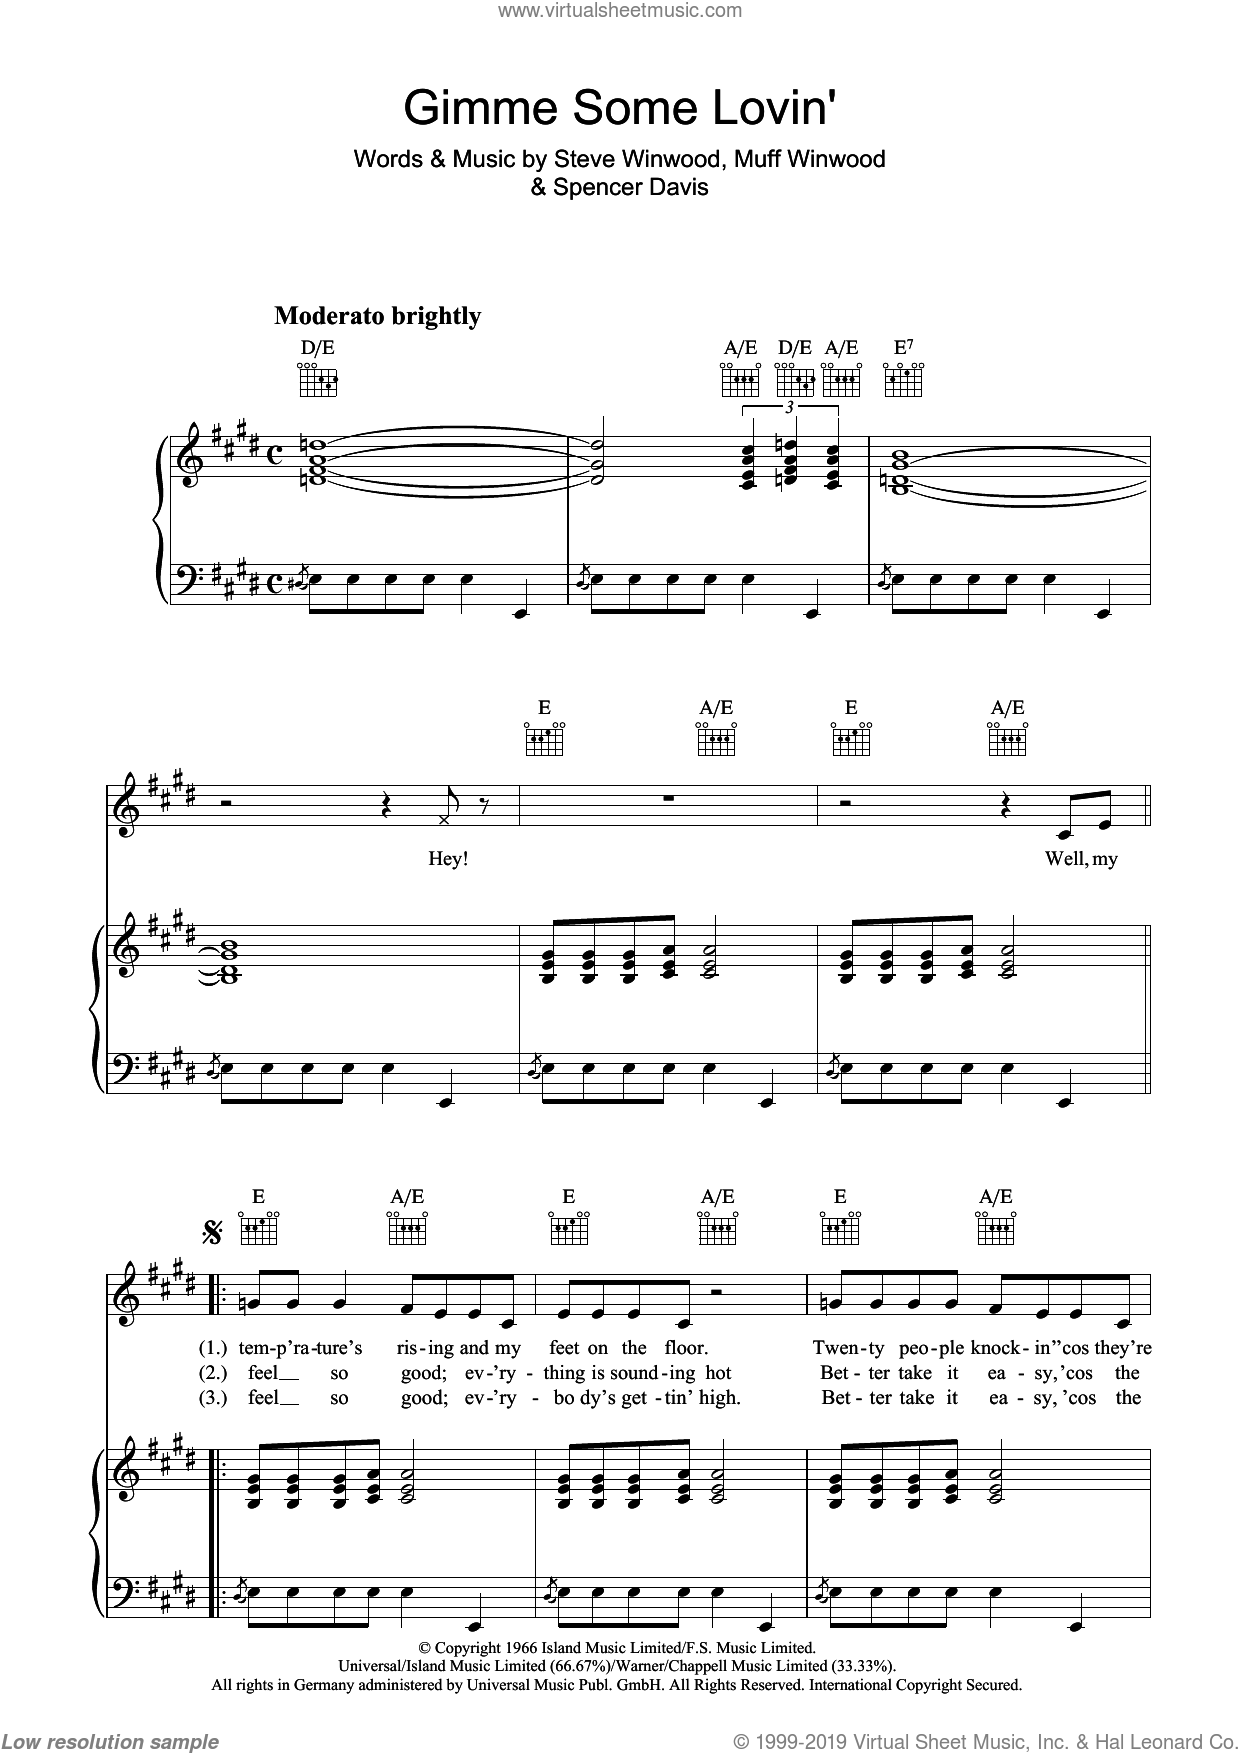 Gimme Some Lovin' sheet music for voice, piano or guitar by The Spencer Davis Group, Muff Winwood, Spencer Davis and Steve Winwood, intermediate skill level